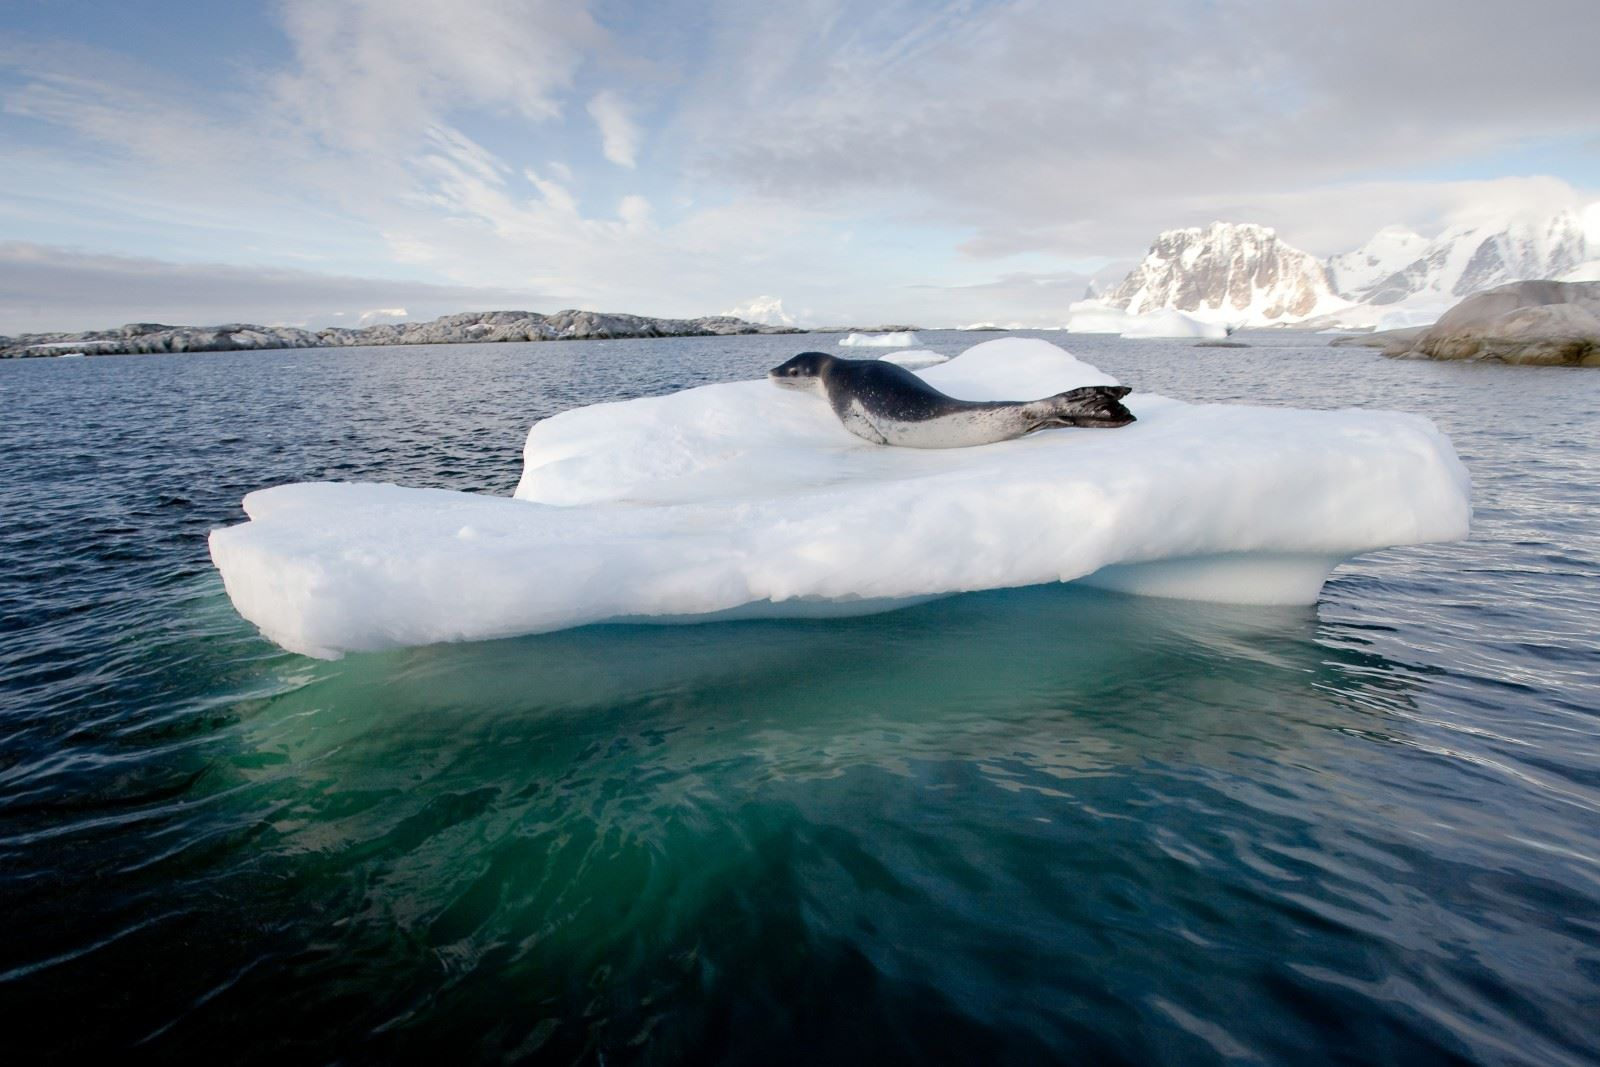 ANTARCTIC PENINSULA BASECAMP CRUISE